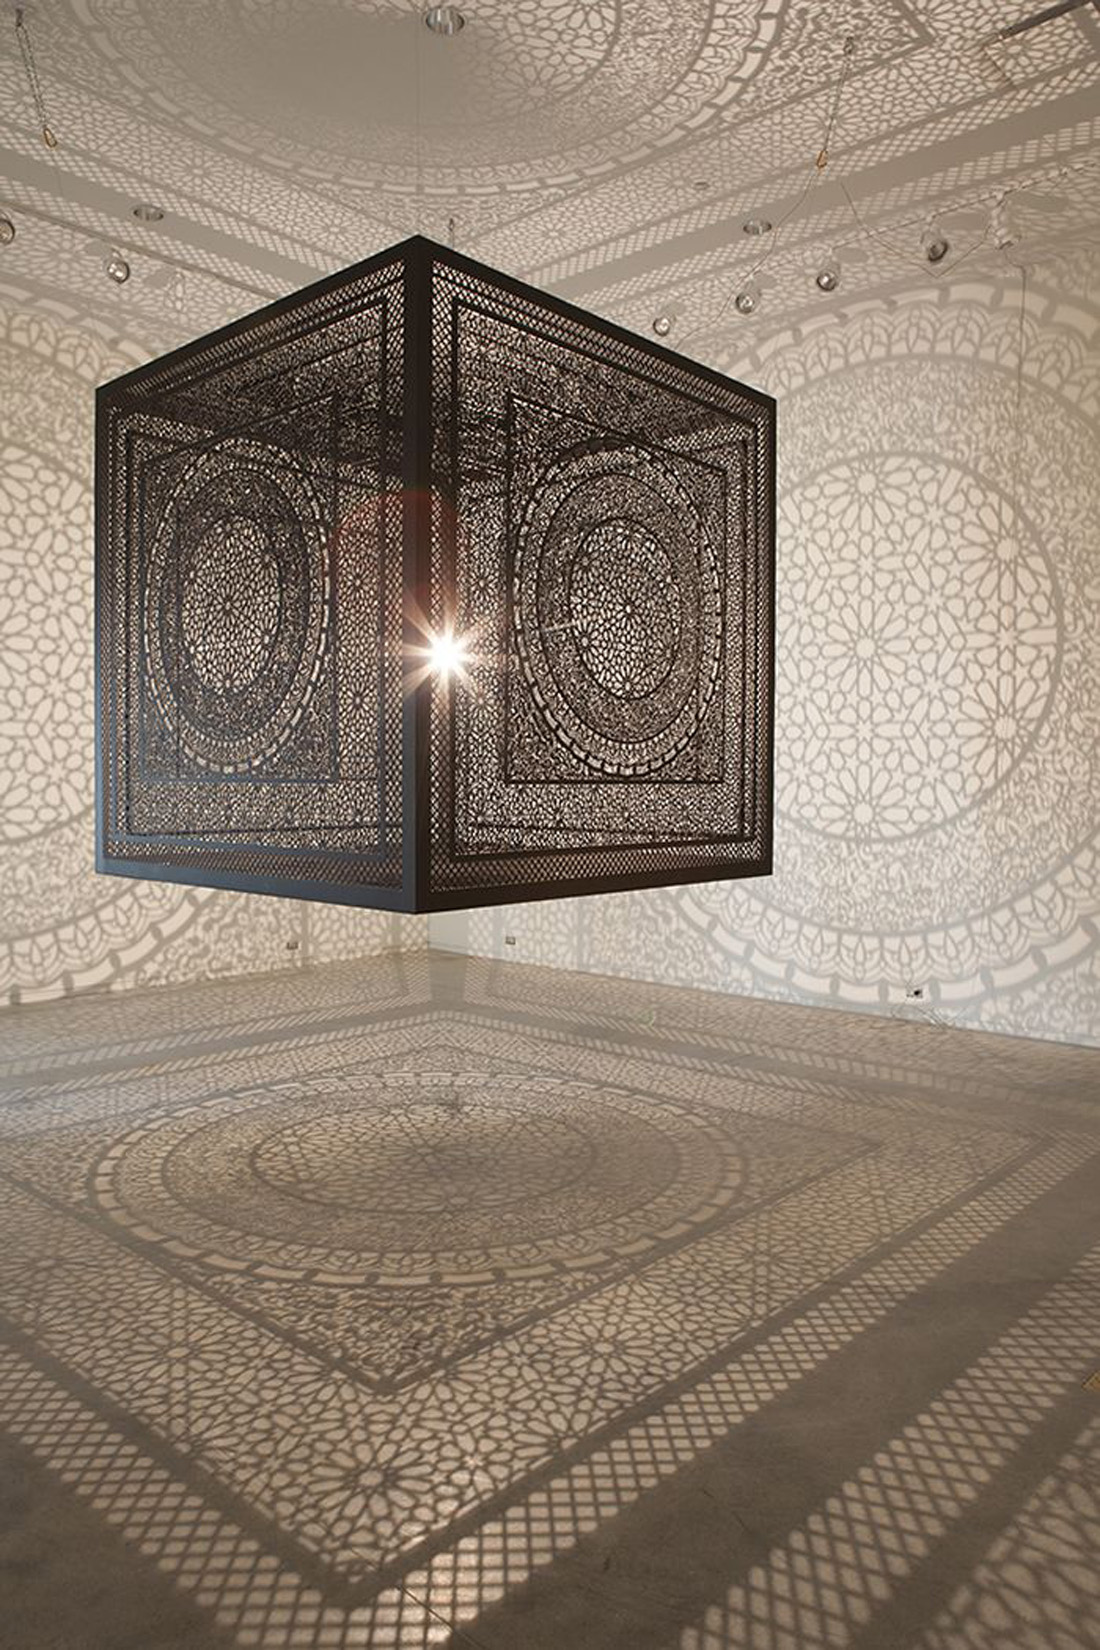 Floating cube installation projects massive shadow patterns by Anila Quayyum Agha